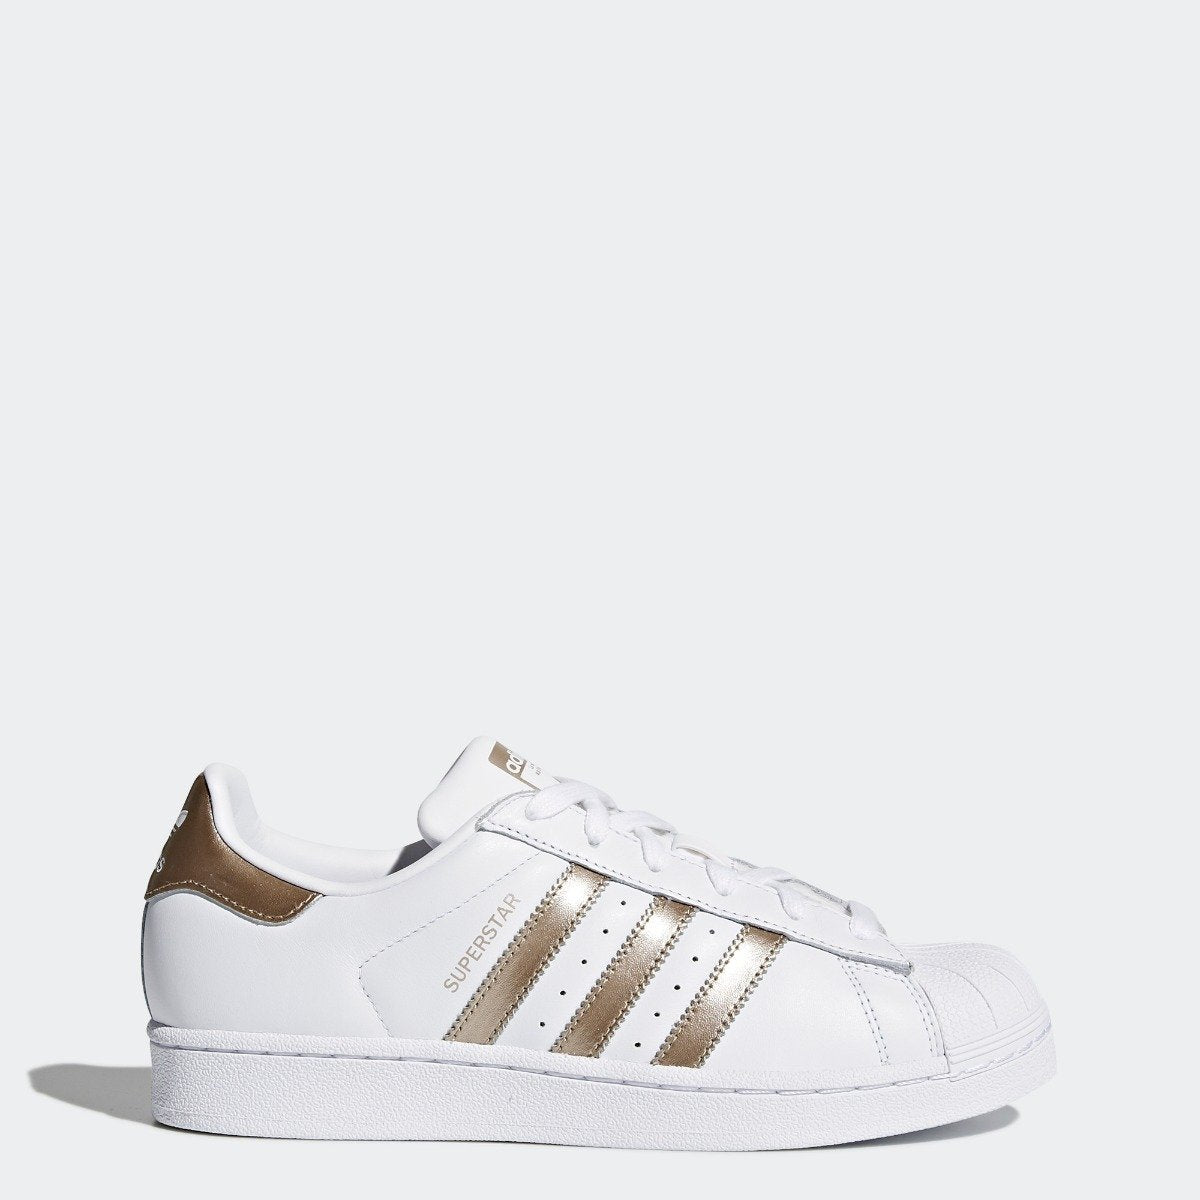 timeless design 15be3 eec28 Women s adidas Originals Superstar Shoes Cloud White with Cyber Metallic